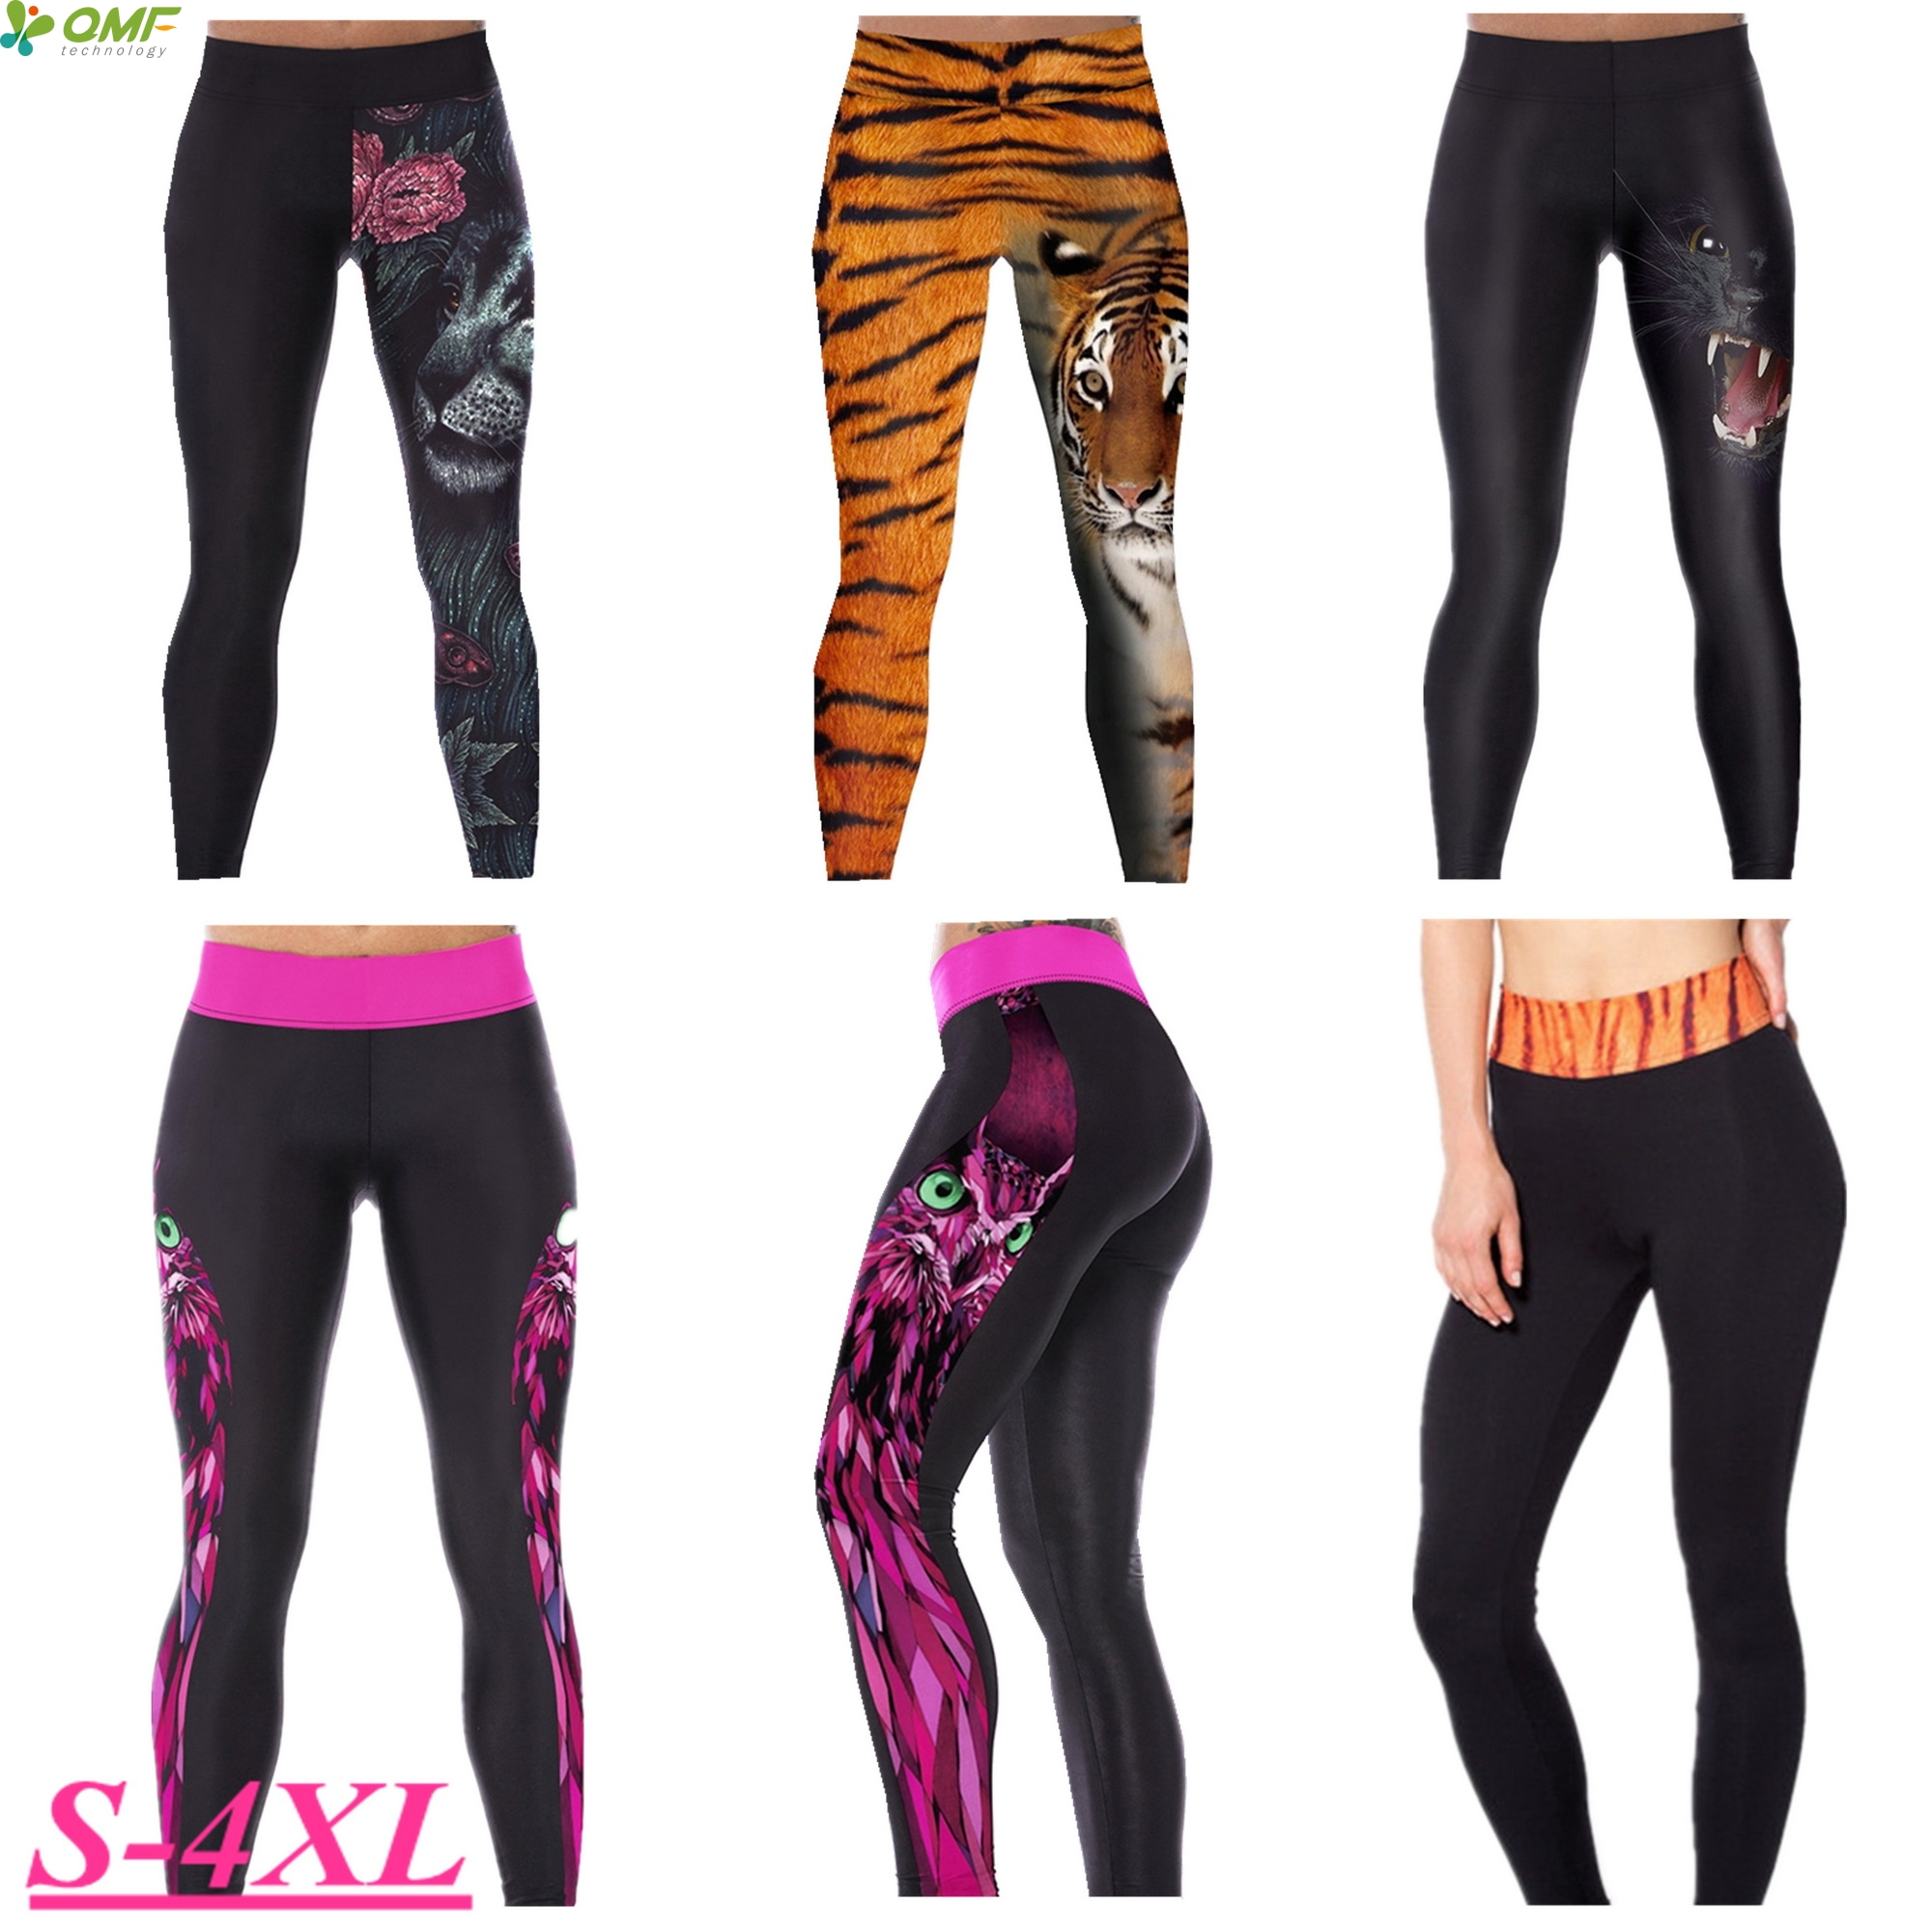 e1c3a27b3bc4cf Detail Feedback Questions about Golden Tiger Fitness Yoga Pant Rose Red Owl Running  Legging Black Leopard Sport Trouser Sexy Butt Lift Gym Training Tights ...